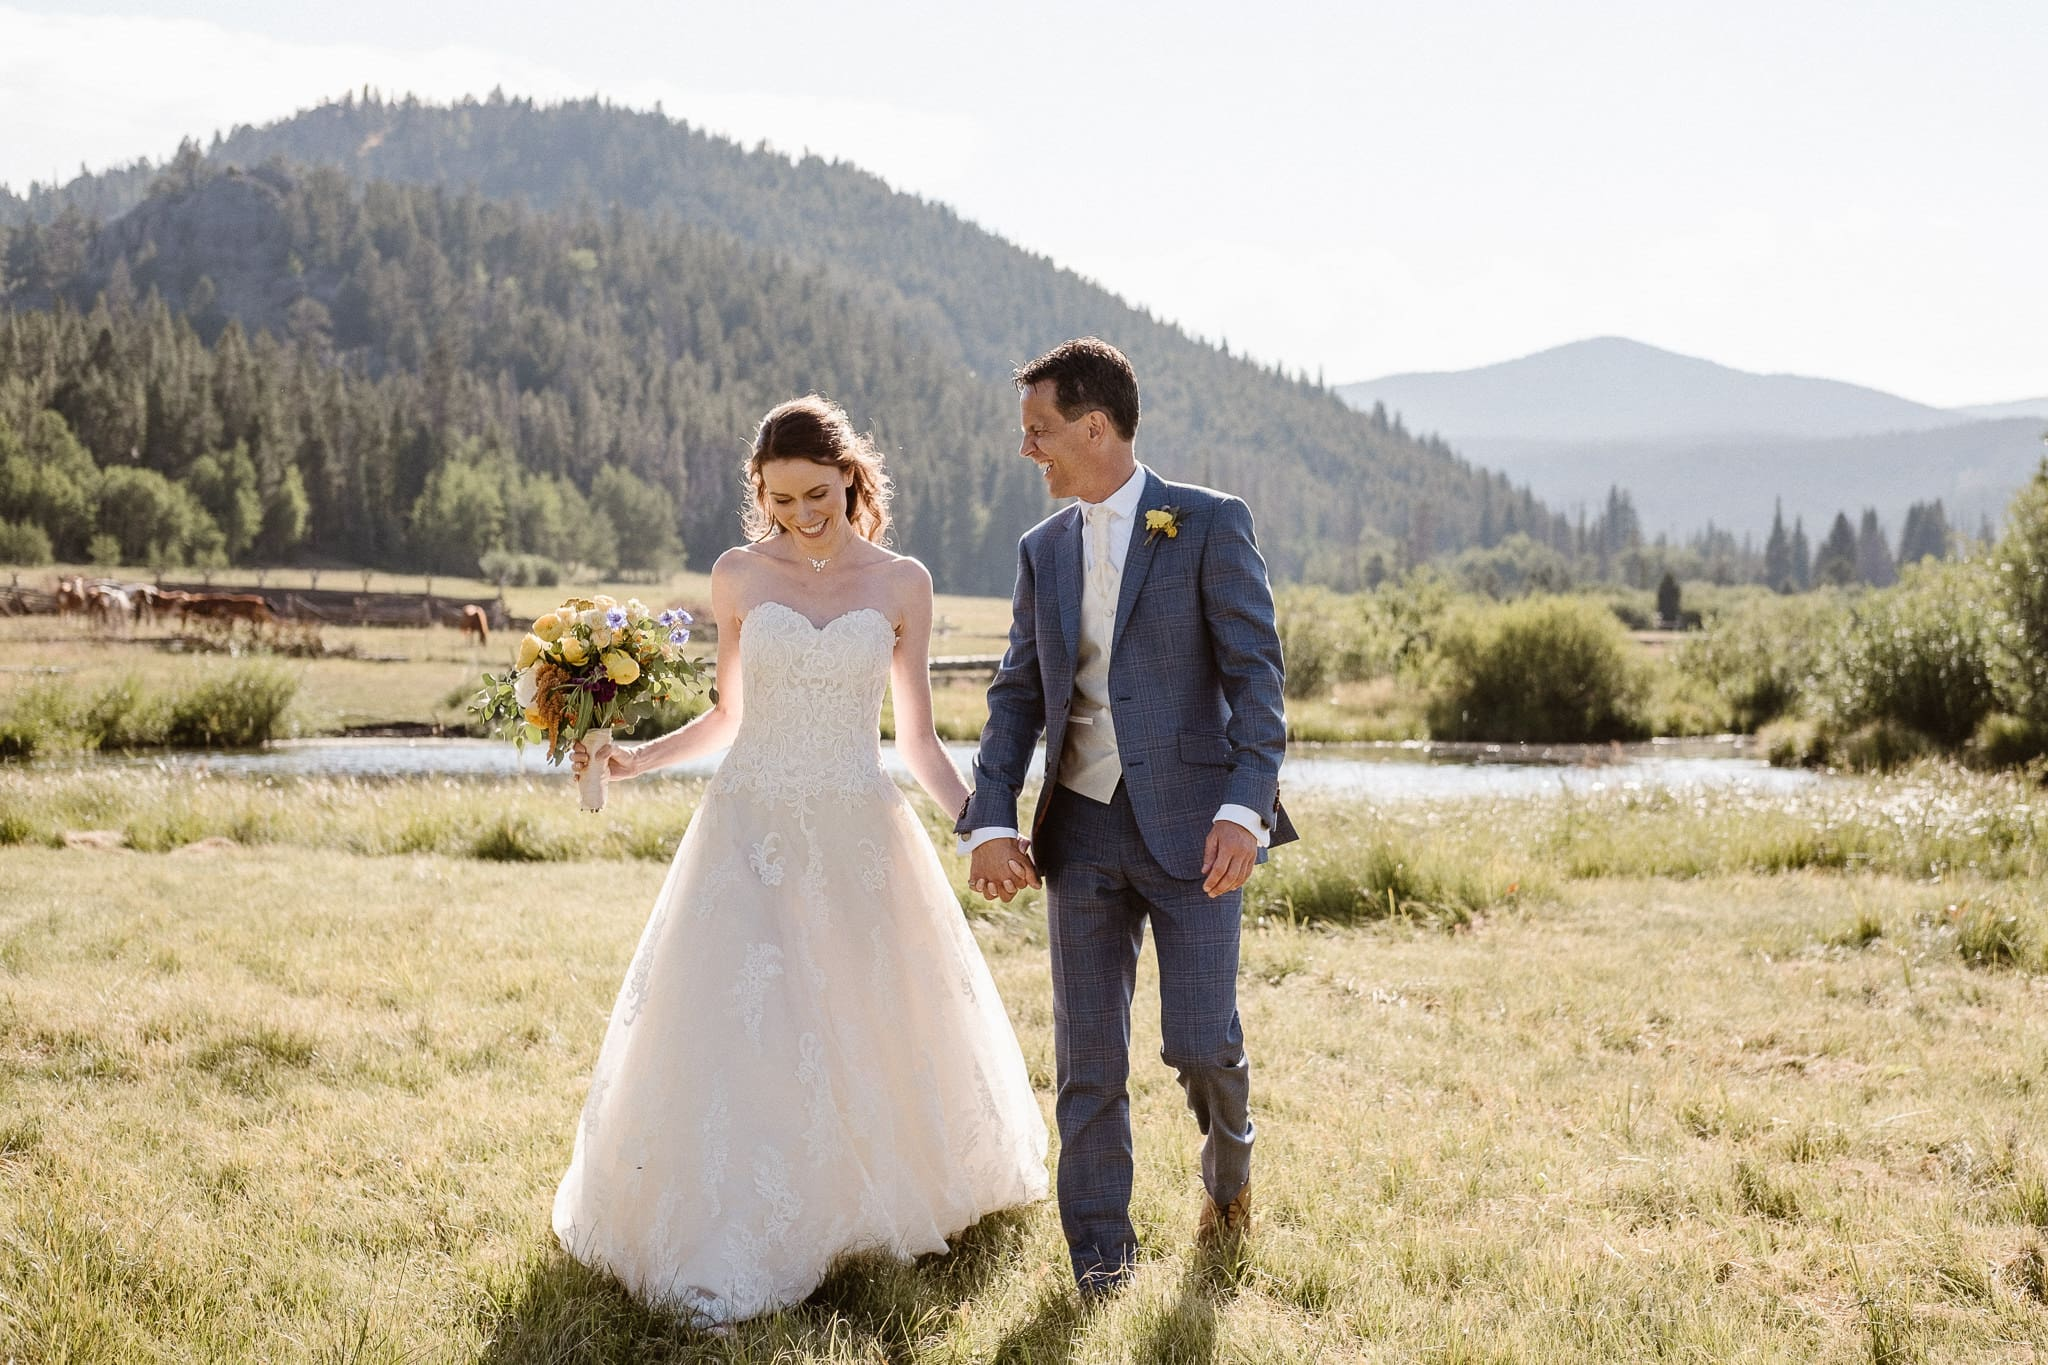 Red Feather Lakes elopement photographer, Colorado intimate cabin wedding, bride and groom portraits in mountain meadow, candid wedding portraits